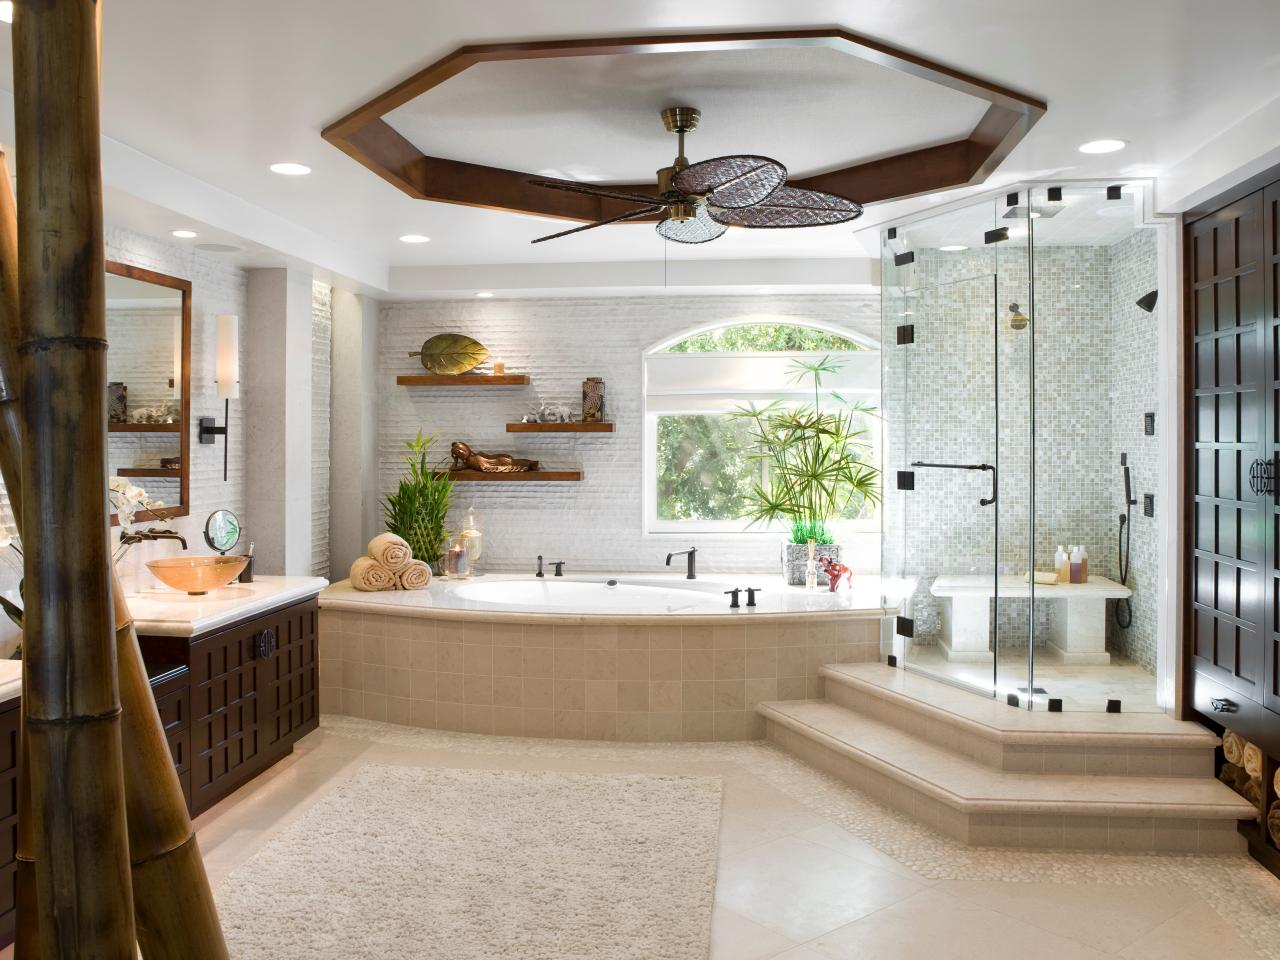 Luxury bathrooms hgtv for Luxury bathroom designs